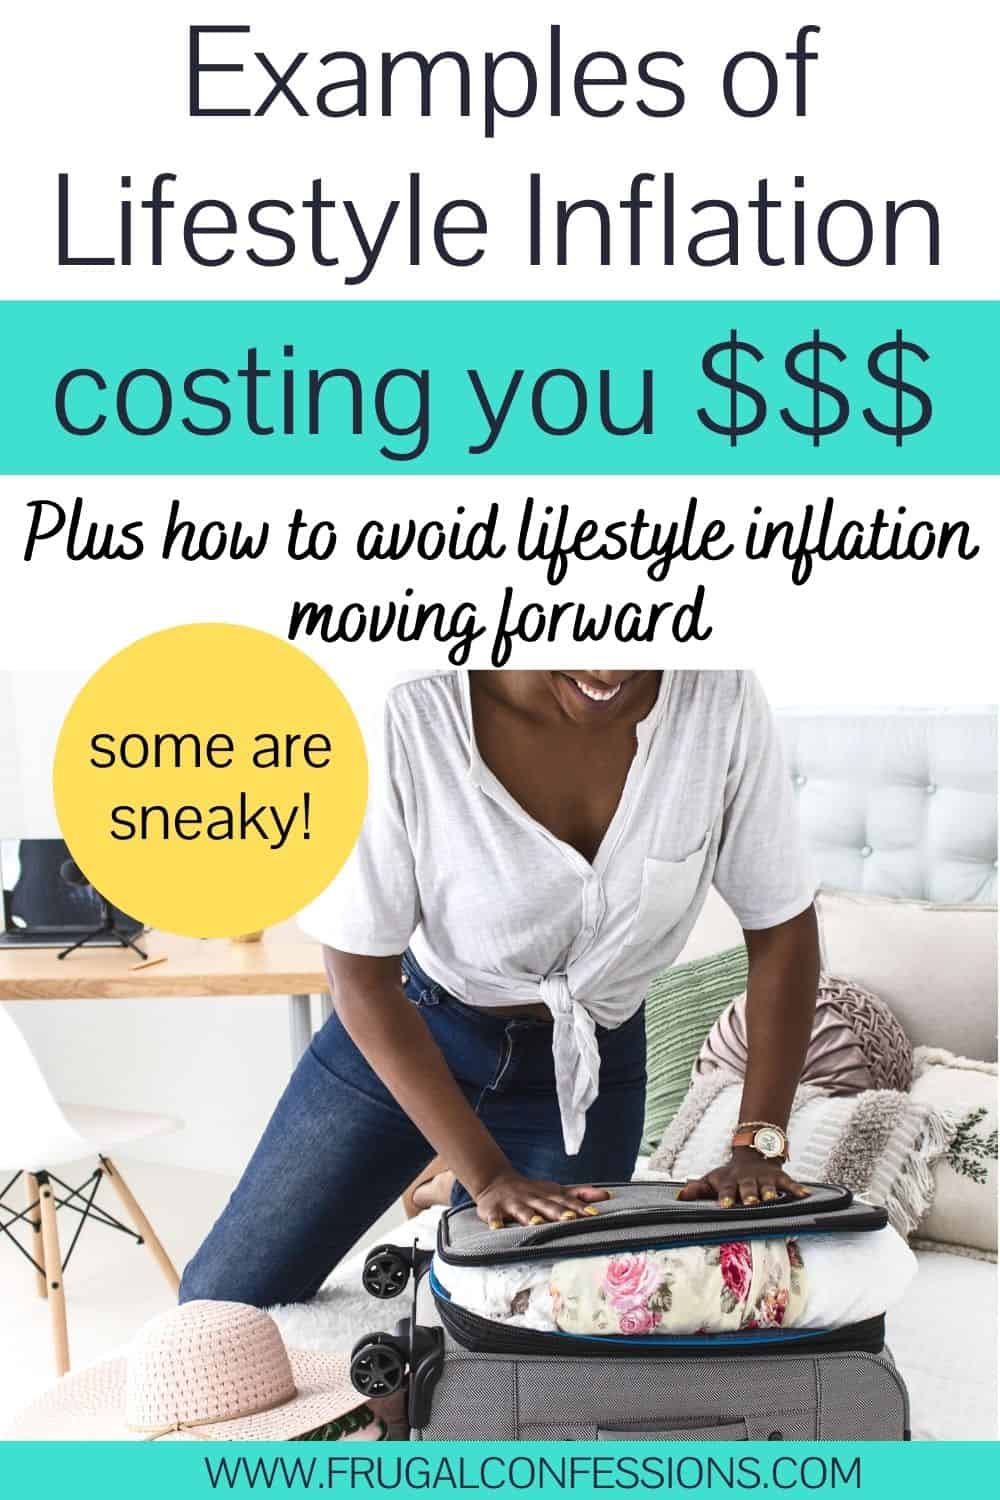 """woman smiling trying to pack overfilled suitcase, text overlay """"examples of lifestyle inflation costing you money"""""""